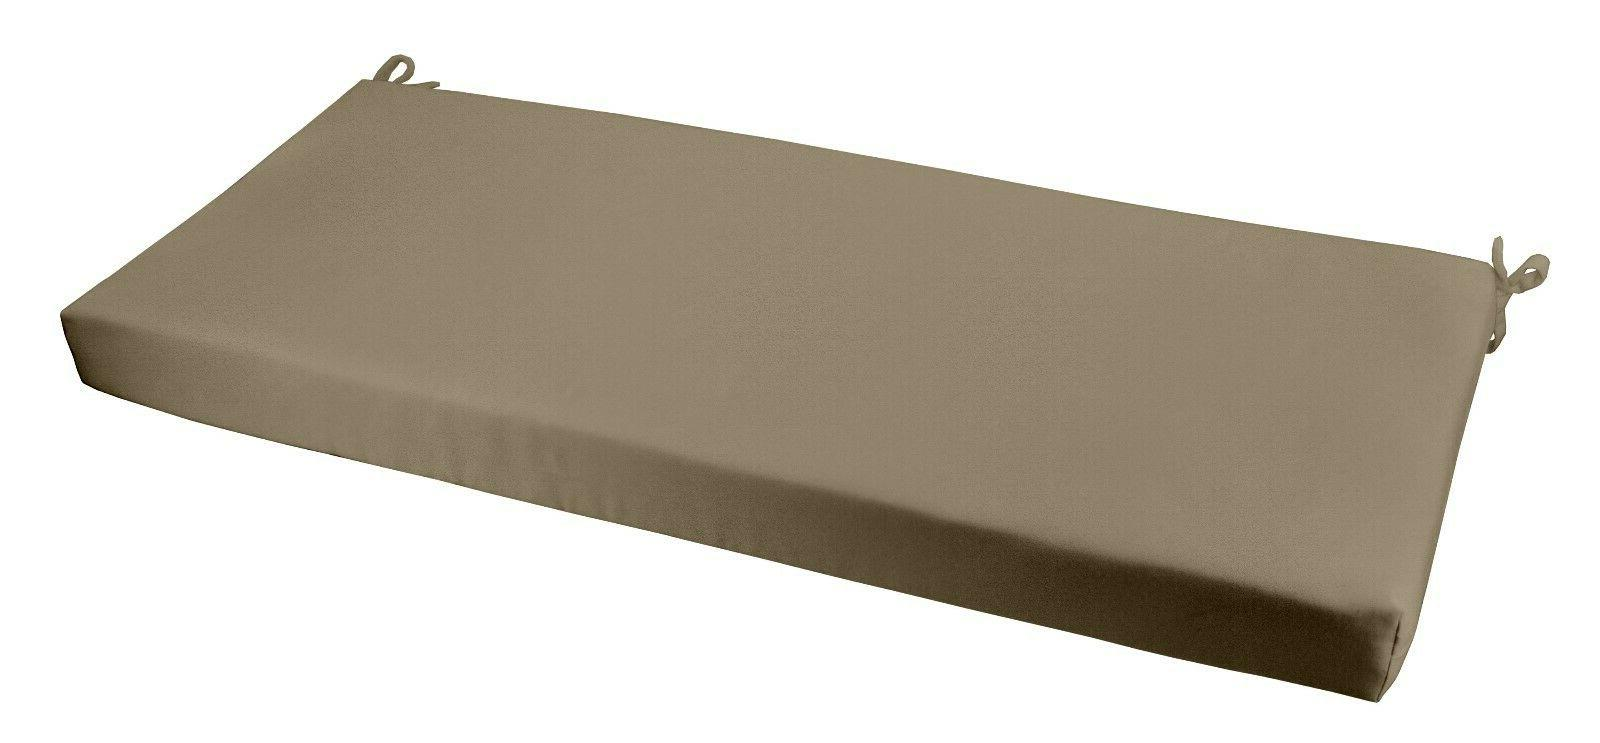 Picture of: Rsh Decor Indoor Outdoor 3 Foam Bench Cushion